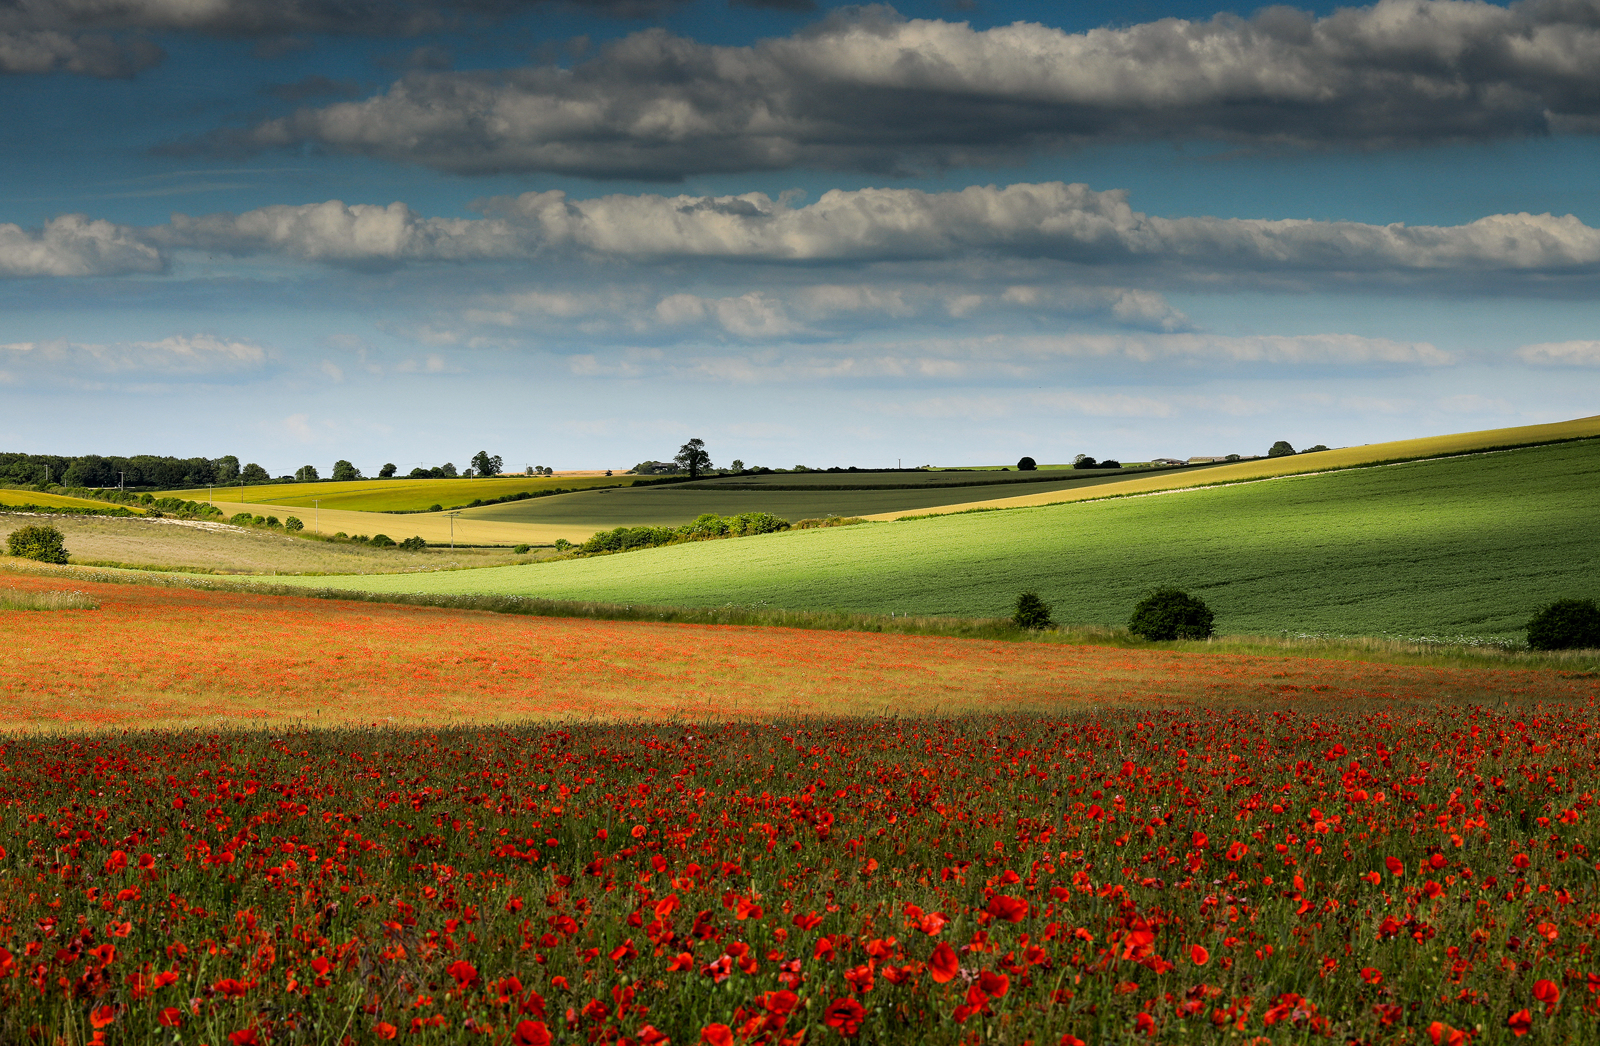 Poppy field in Six Penny Handley shot by Matt Pinner nominated for British Photography Awards